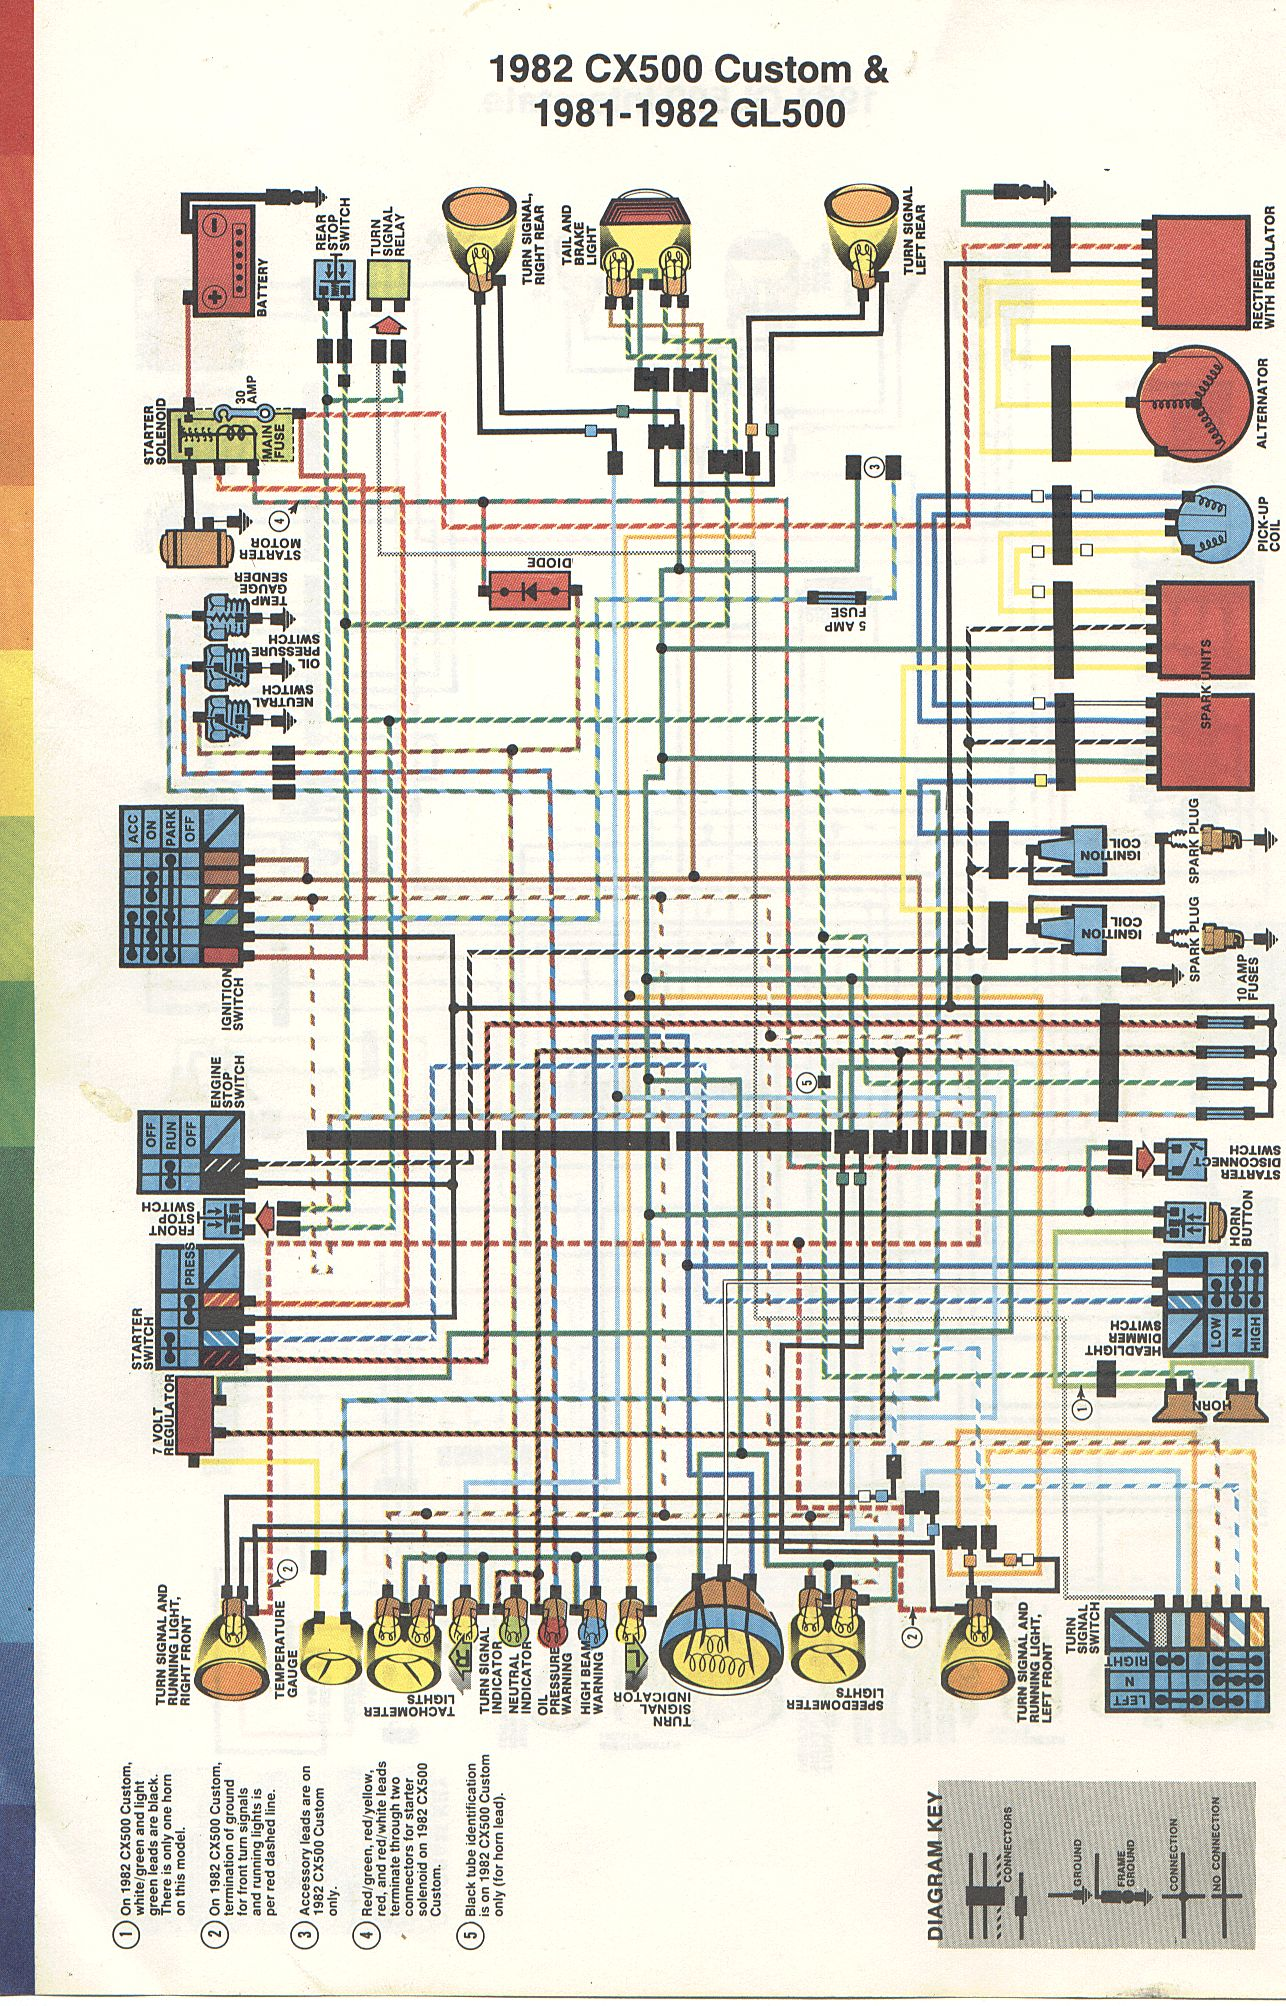 '81 honda gl500 interstate wiring diagram · '